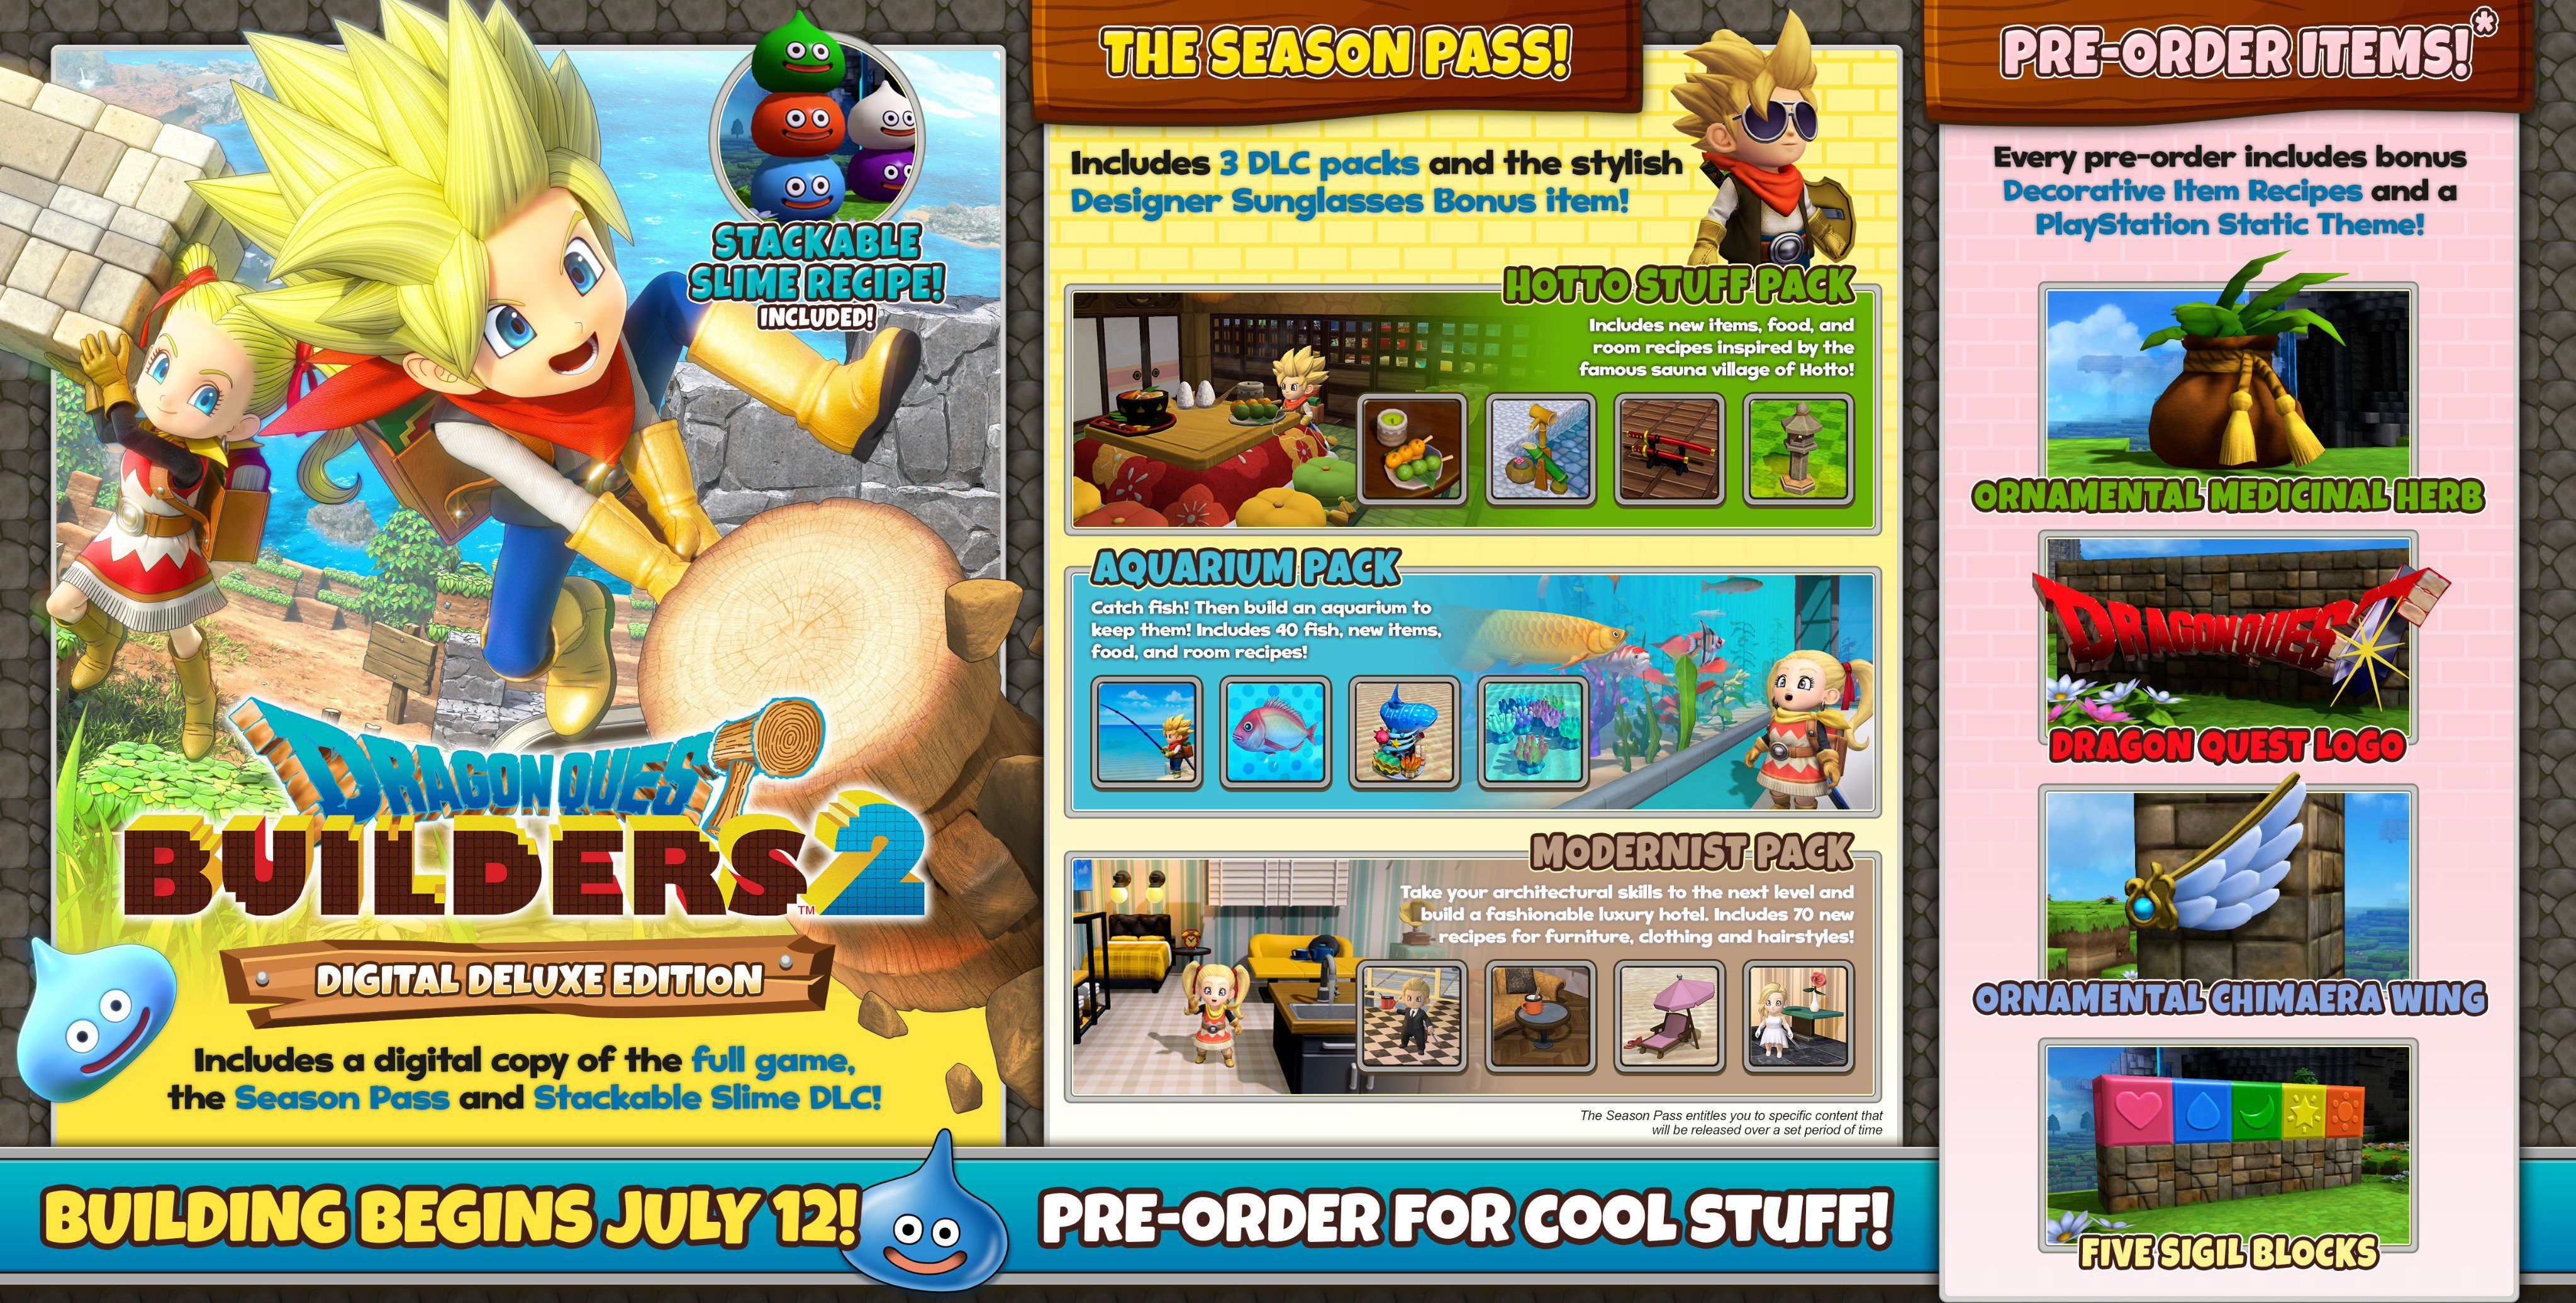 Dragon Quest Builders 2 Game Preorders As well as combining items to form new rooms, you can also put them together to create sets, which are both. dragon quest builders 2 game preorders